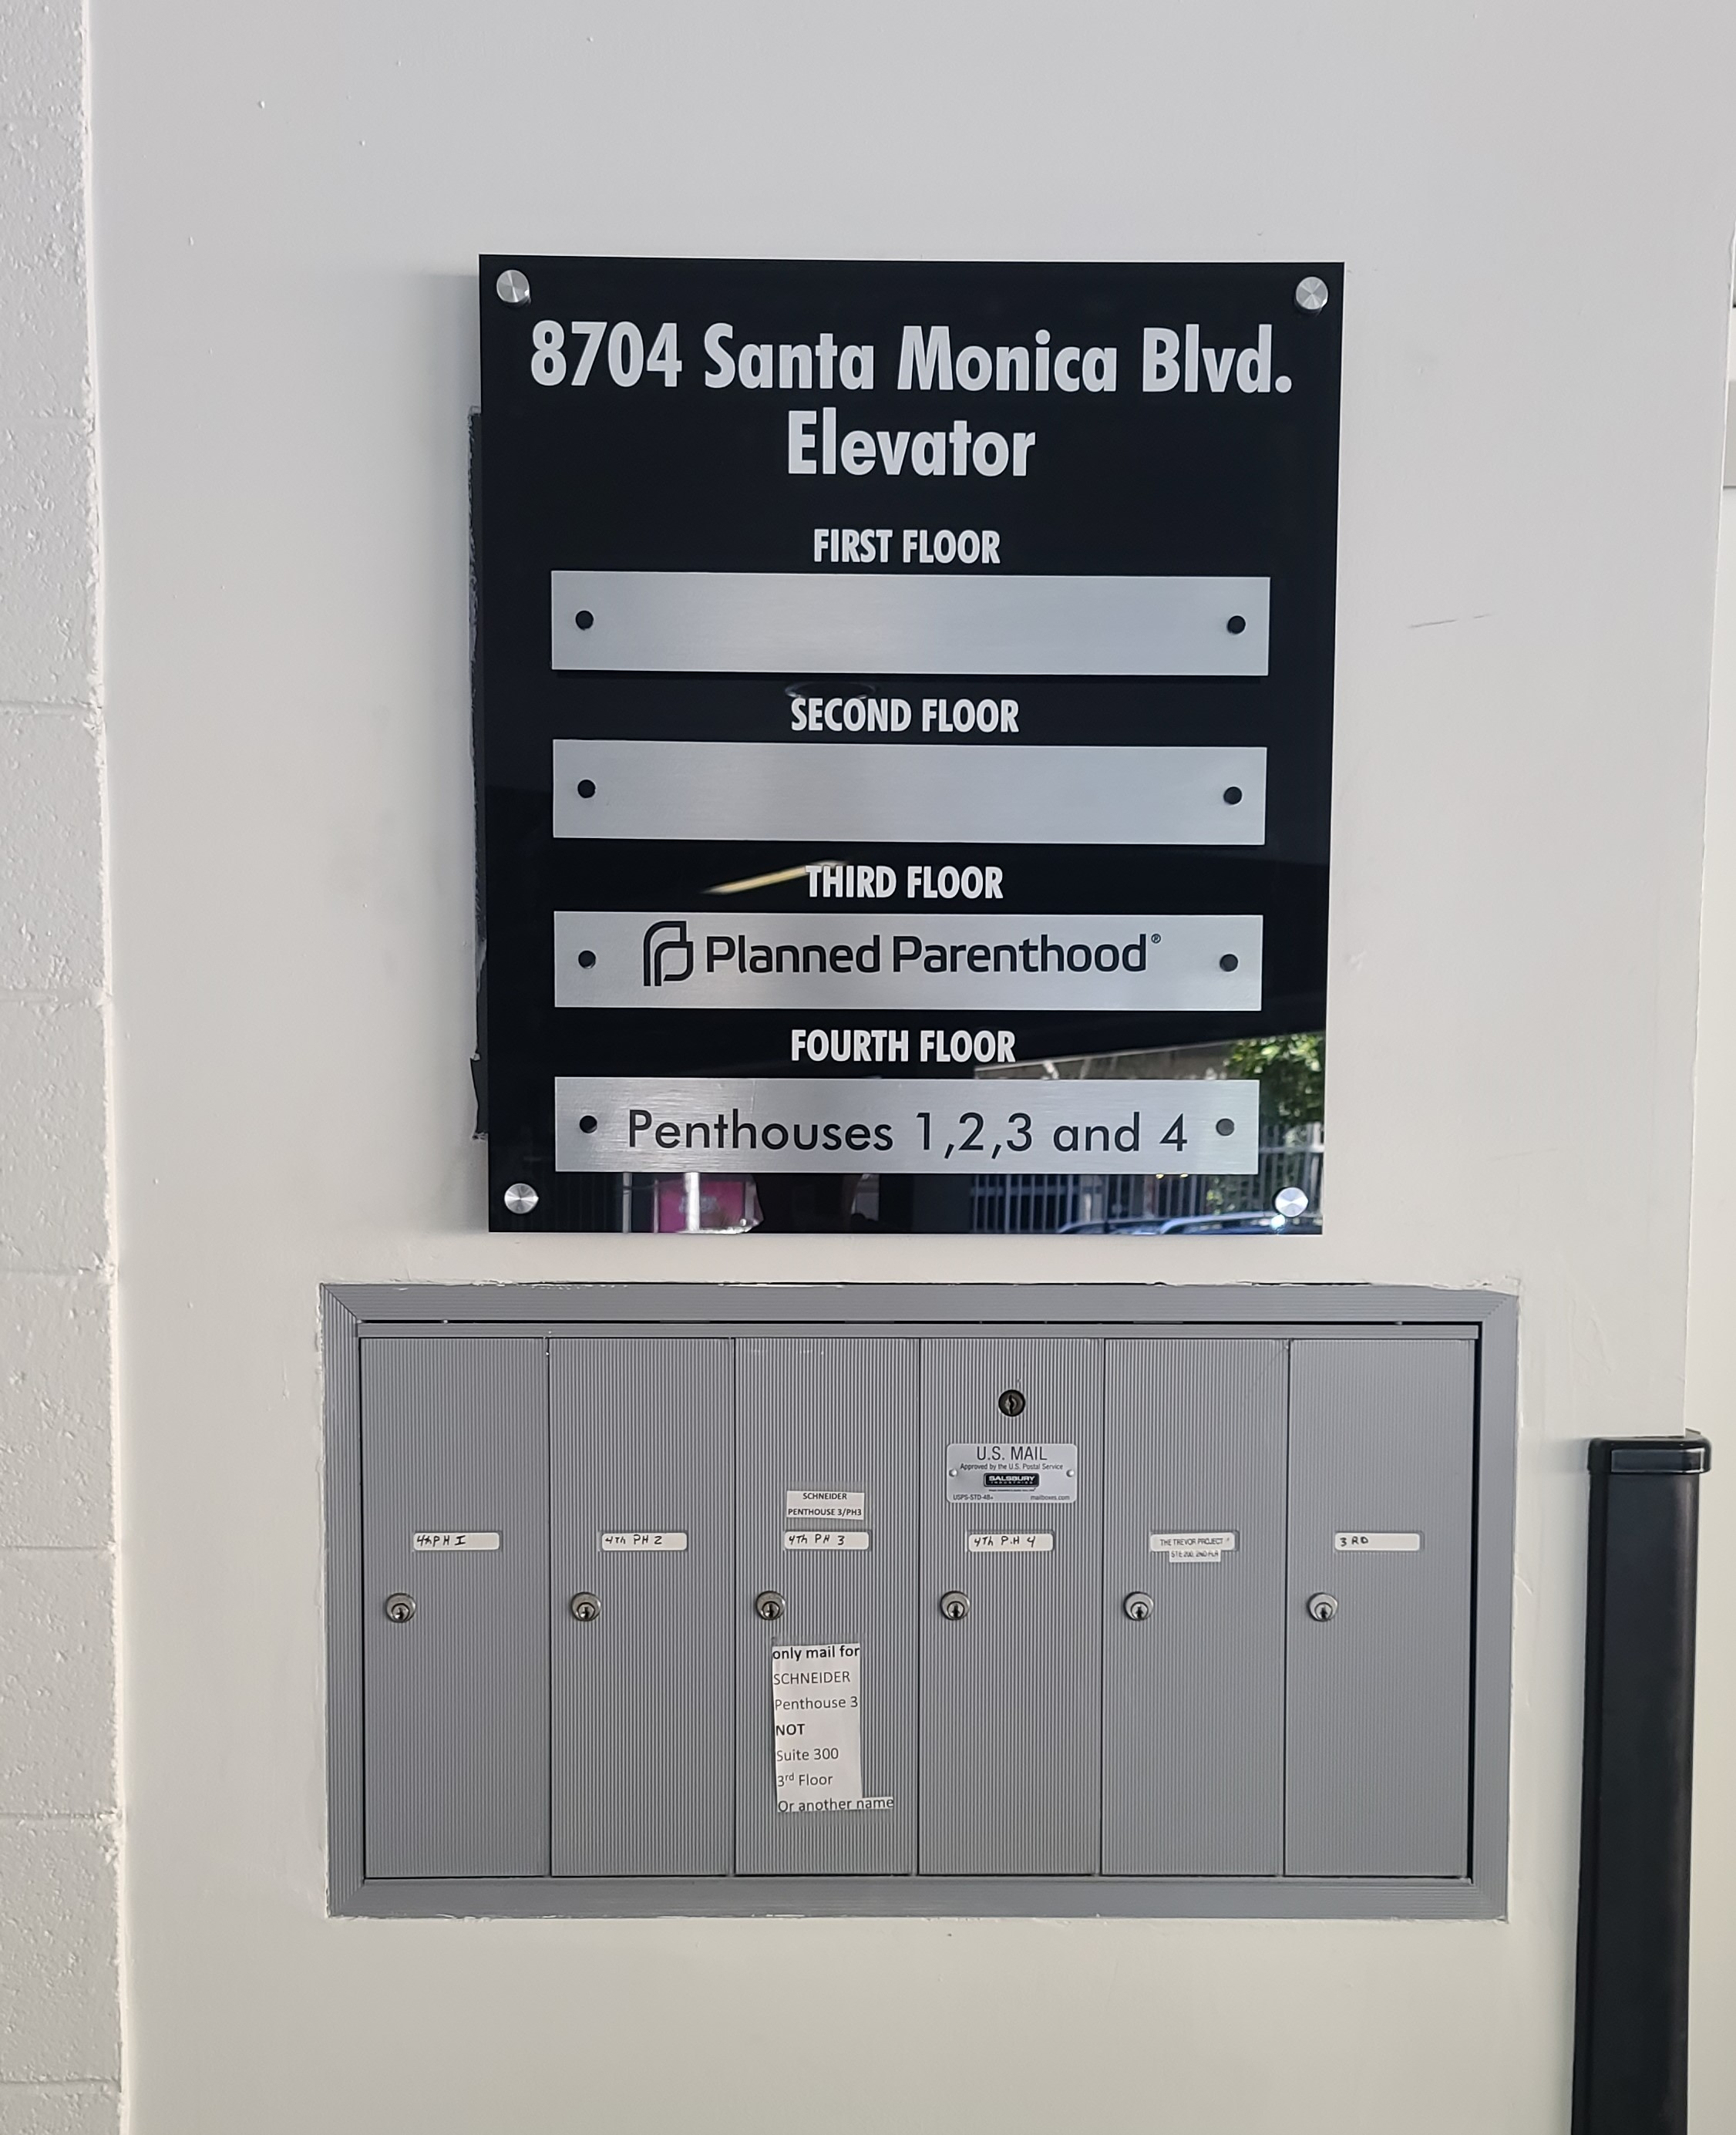 This tenant directory sign for Ronco Inc. helps residents and visitors alike better navigate the West Hollywood building.